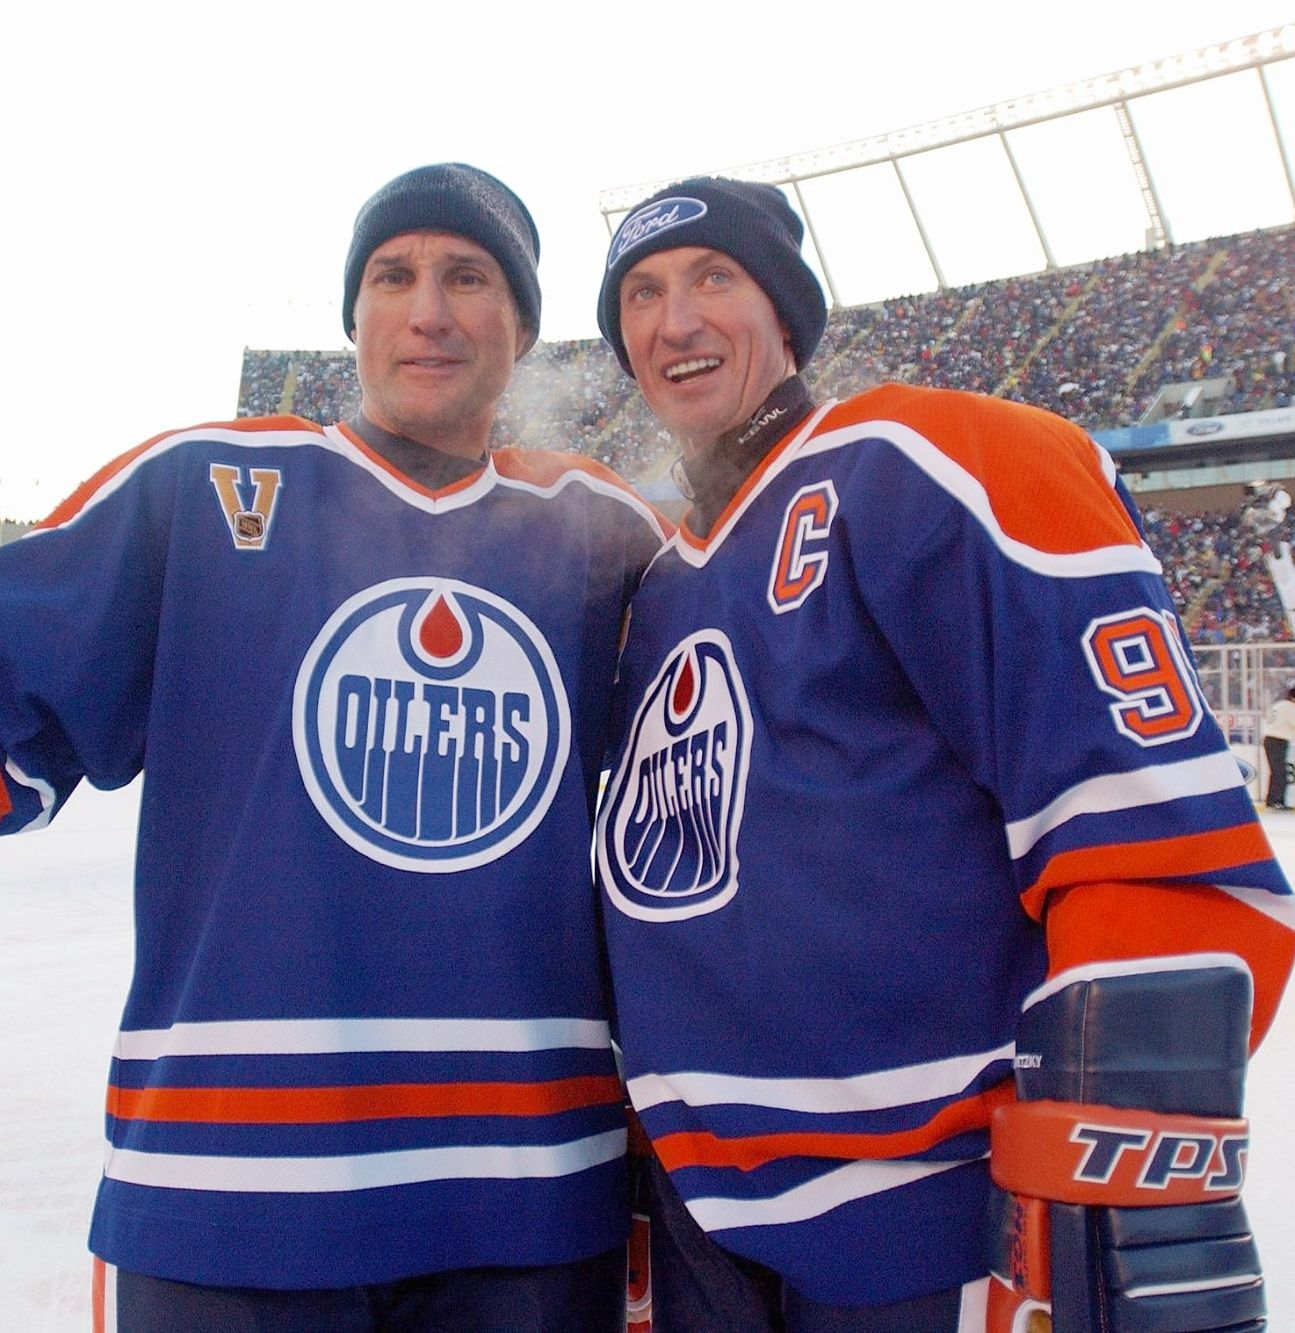 The Oilers Alumni Roster For The Heritageclassic In Winnipeg Has Been Announced These Players Have All Been Confirmed Oilers Edmonton Oilers Hockey Players